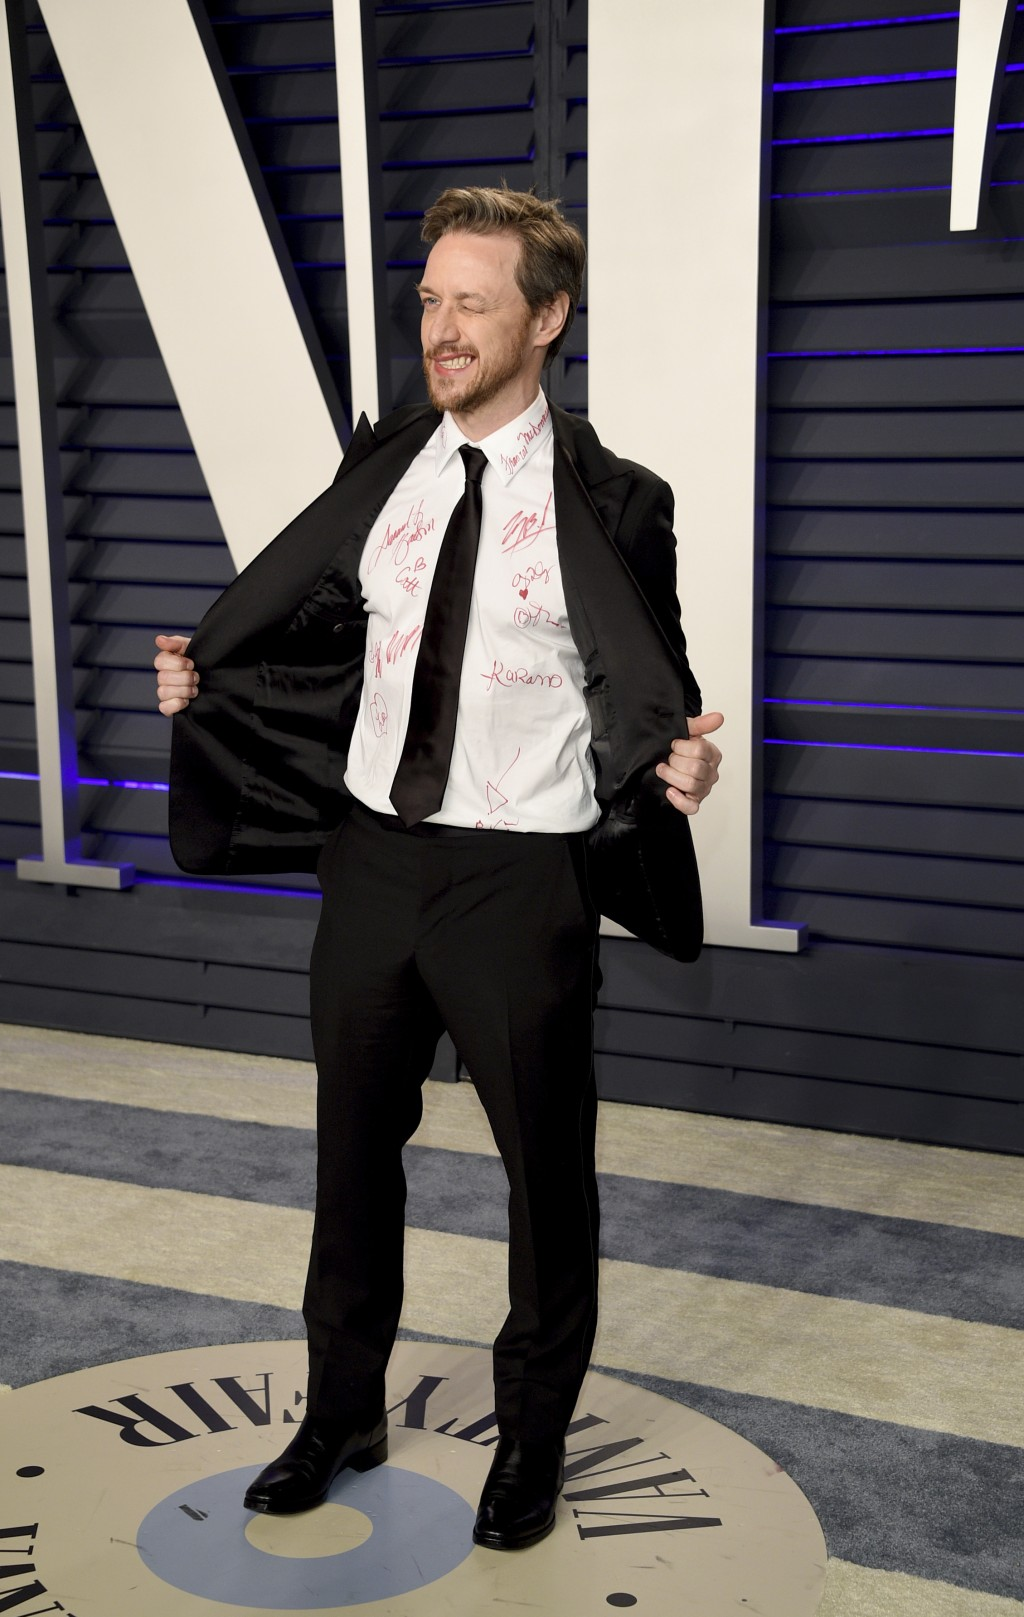 James McAvoy arrives at the Vanity Fair Oscar Party on Sunday, Feb. 24, 2019, in Beverly Hills, Calif. (Photo by Evan Agostini/Invision/AP)